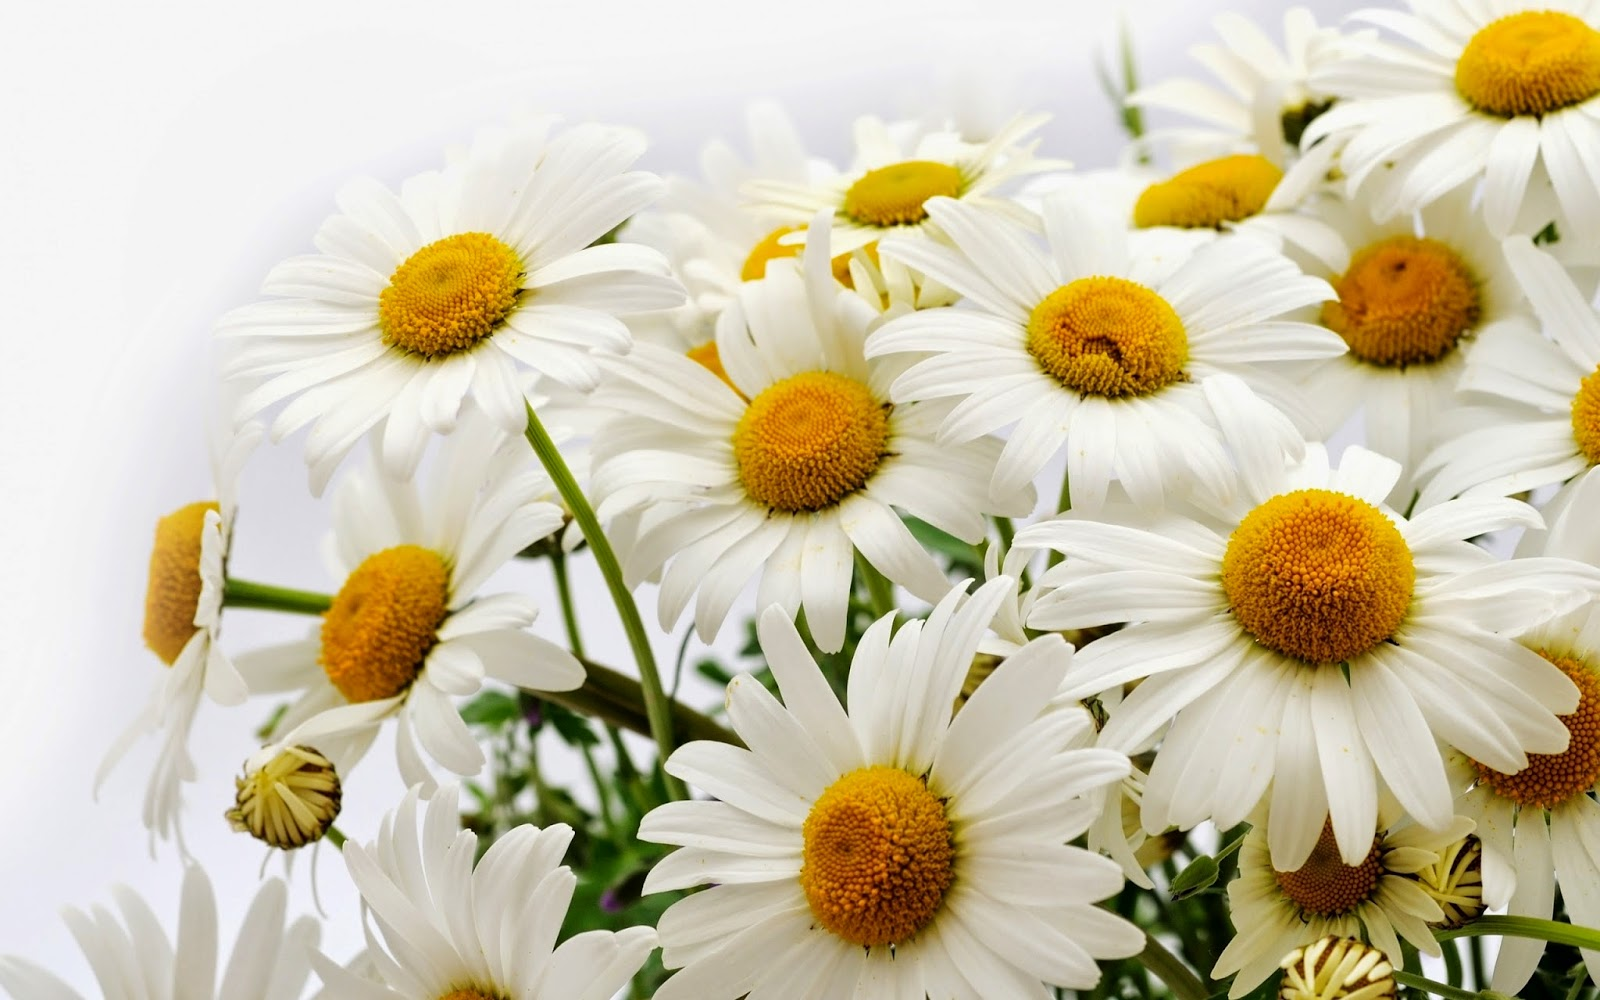 Gerbera-Daisy-flowers-pictures-HD-free-download.jpg